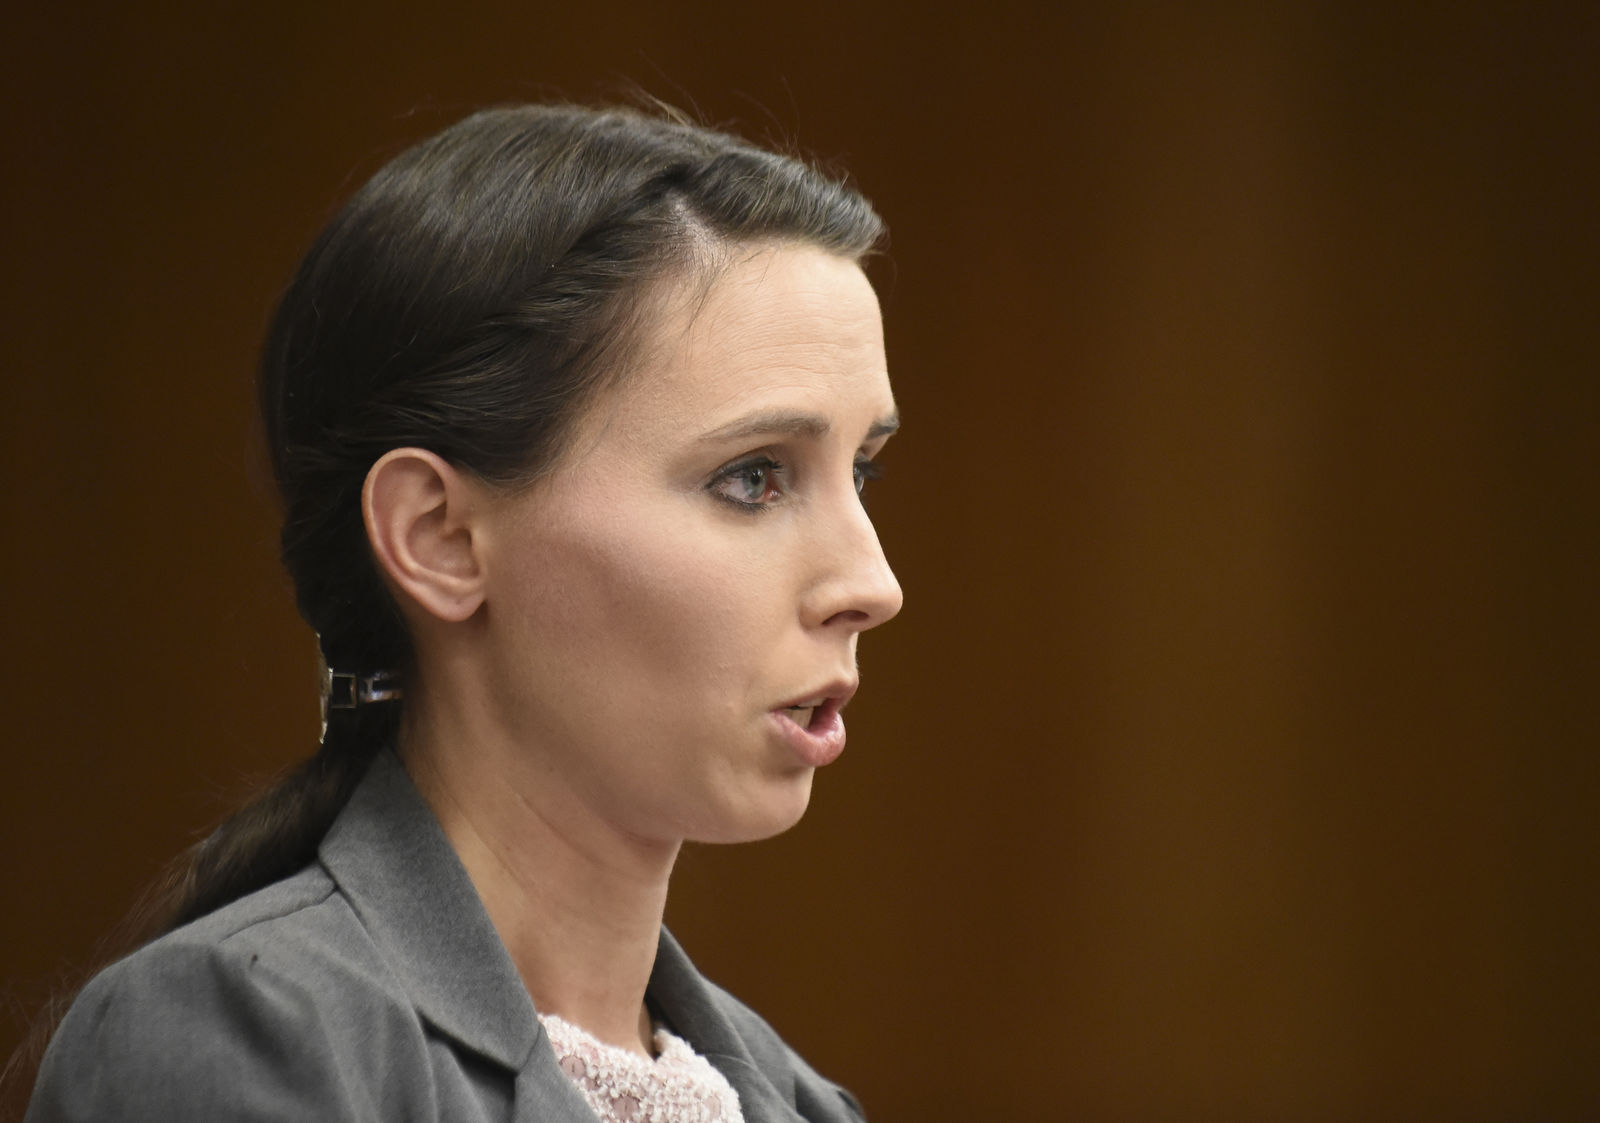 FILE - In this Feb. 2, 2018, file photo, Rachael Denhollander speaks during her victim impact statement, in Eaton County Circuit Court in Judge Janet Cunningham's courtroom in Charlotte, Mich. Denhollander, the first woman who publicly accused convicted sports doctor Larry Nassar of sexual abuse says she is horrified and deeply disappointed with the University of Michigan for how it has handled allegations of abuse by Dr. Robert E. Anderson, at the school. The former gymnast said on Saturday, Feb. 22, 2020, that the school chose corruption over transparency when they put the survivors in a place where they had no choice but to speak publicly. (Matthew Dae Smith/Lansing State Journal via AP, File)